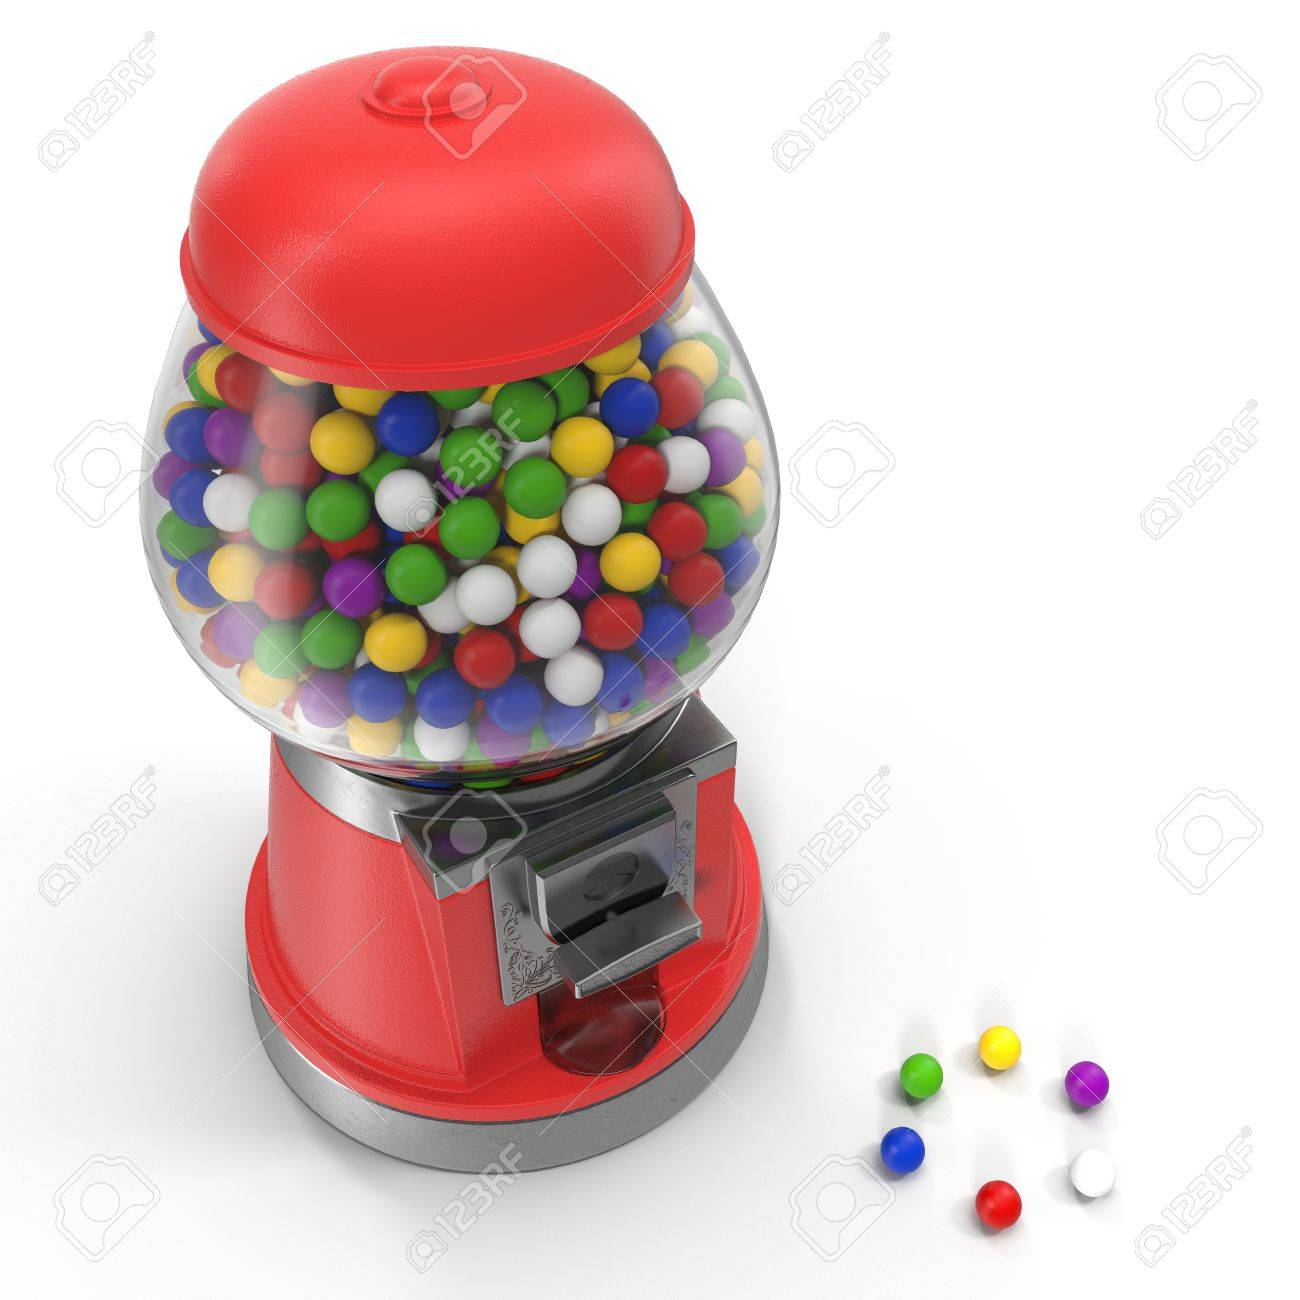 1300x1300 Vintage Red Gumball Machine With Multi Colored Gumballs On White